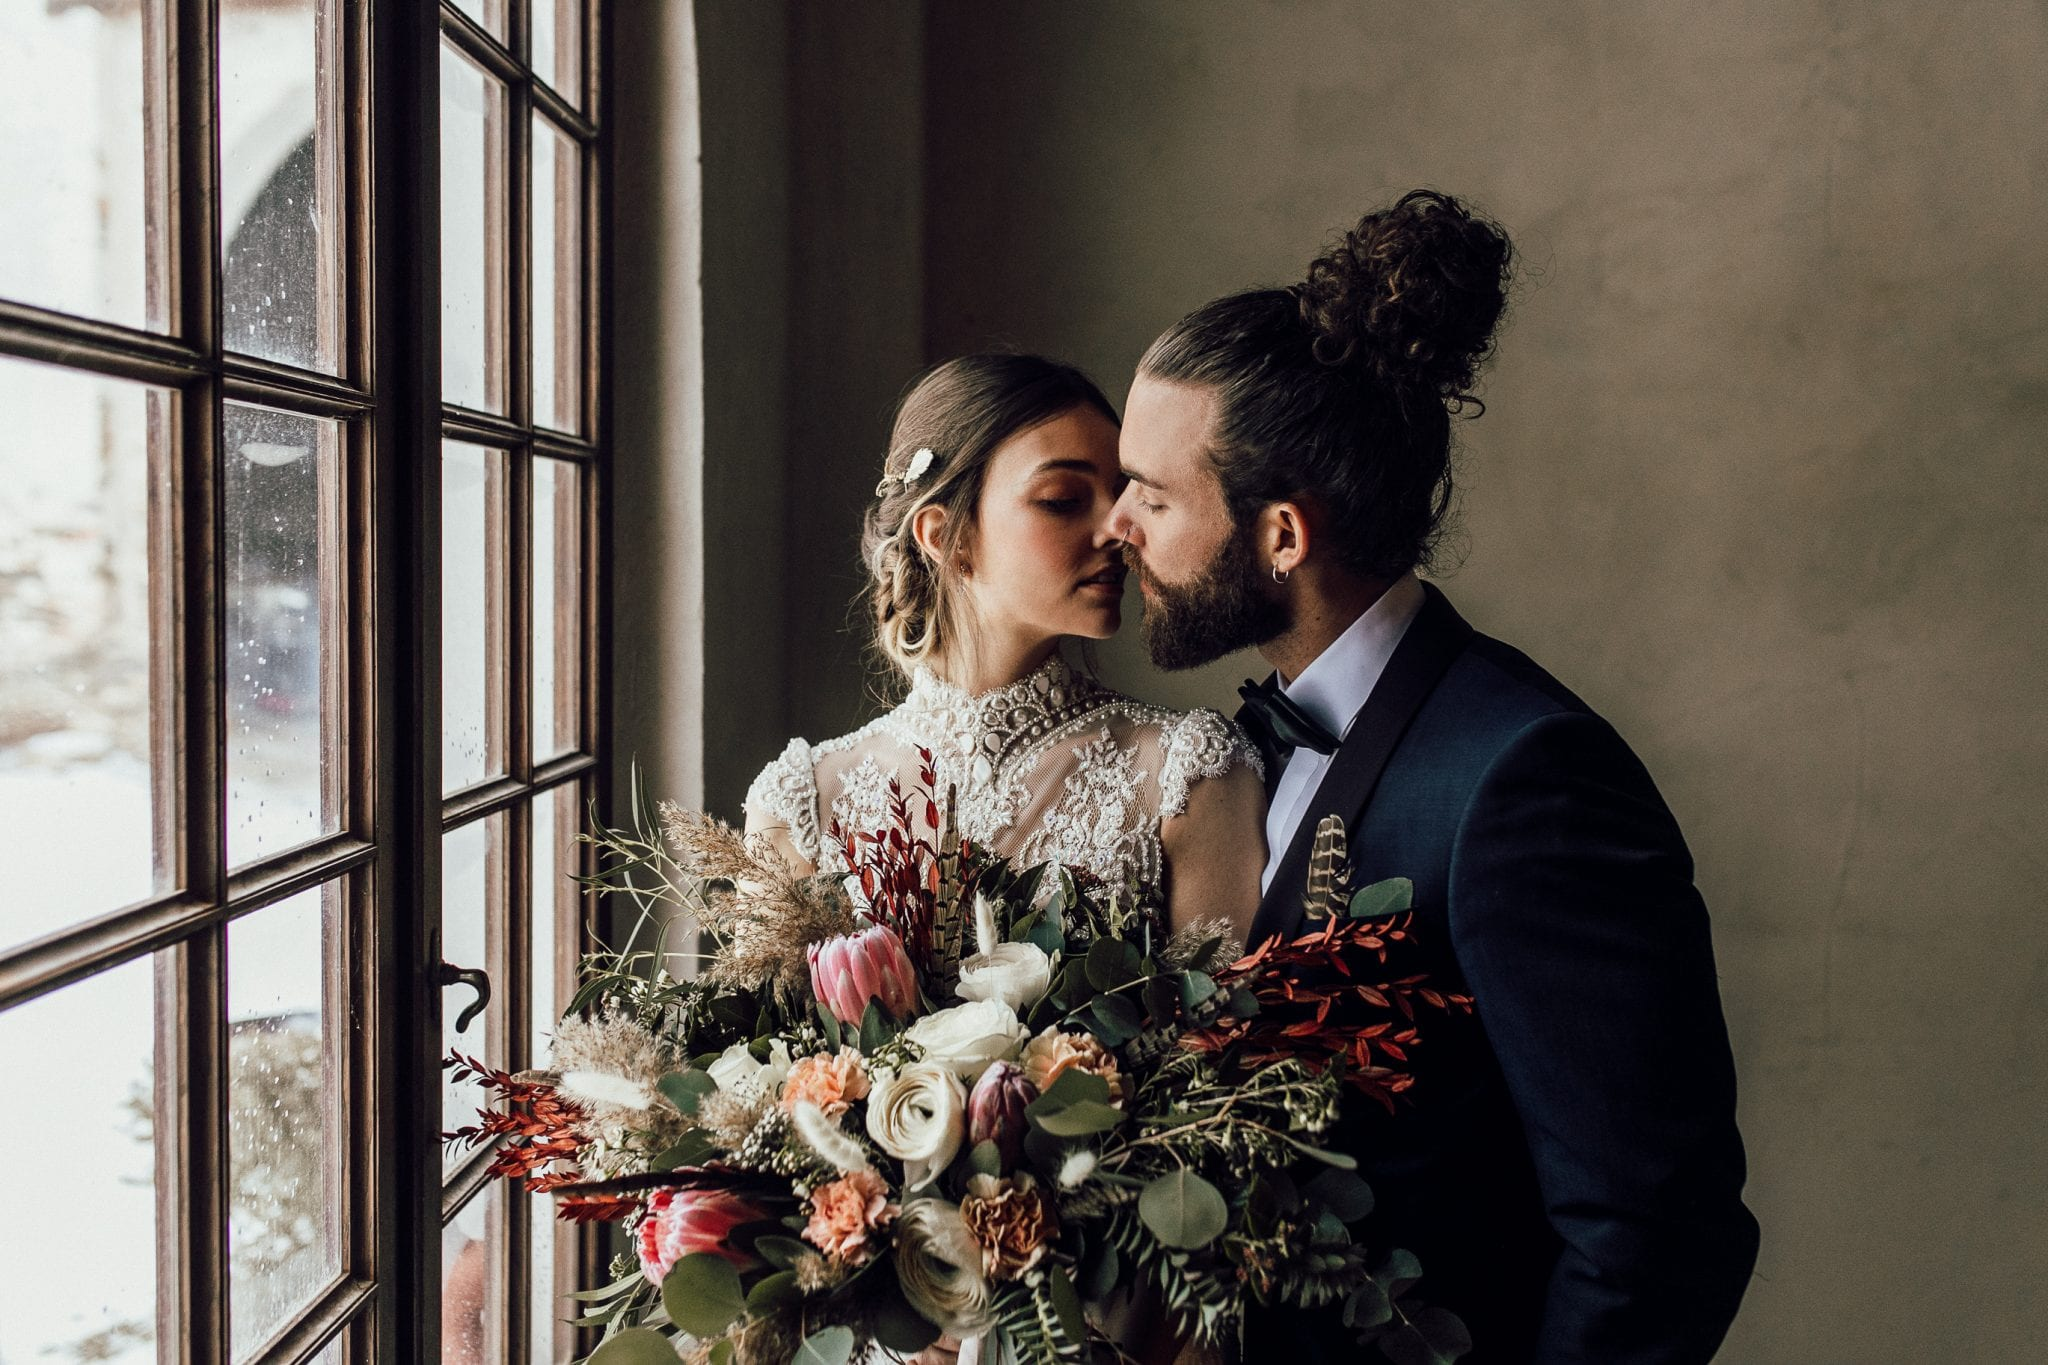 Elopement, Photo, Austria, Wedding, Blitzkneisser, Foto, Innsbruck, Tyrol, Preset, Juniper